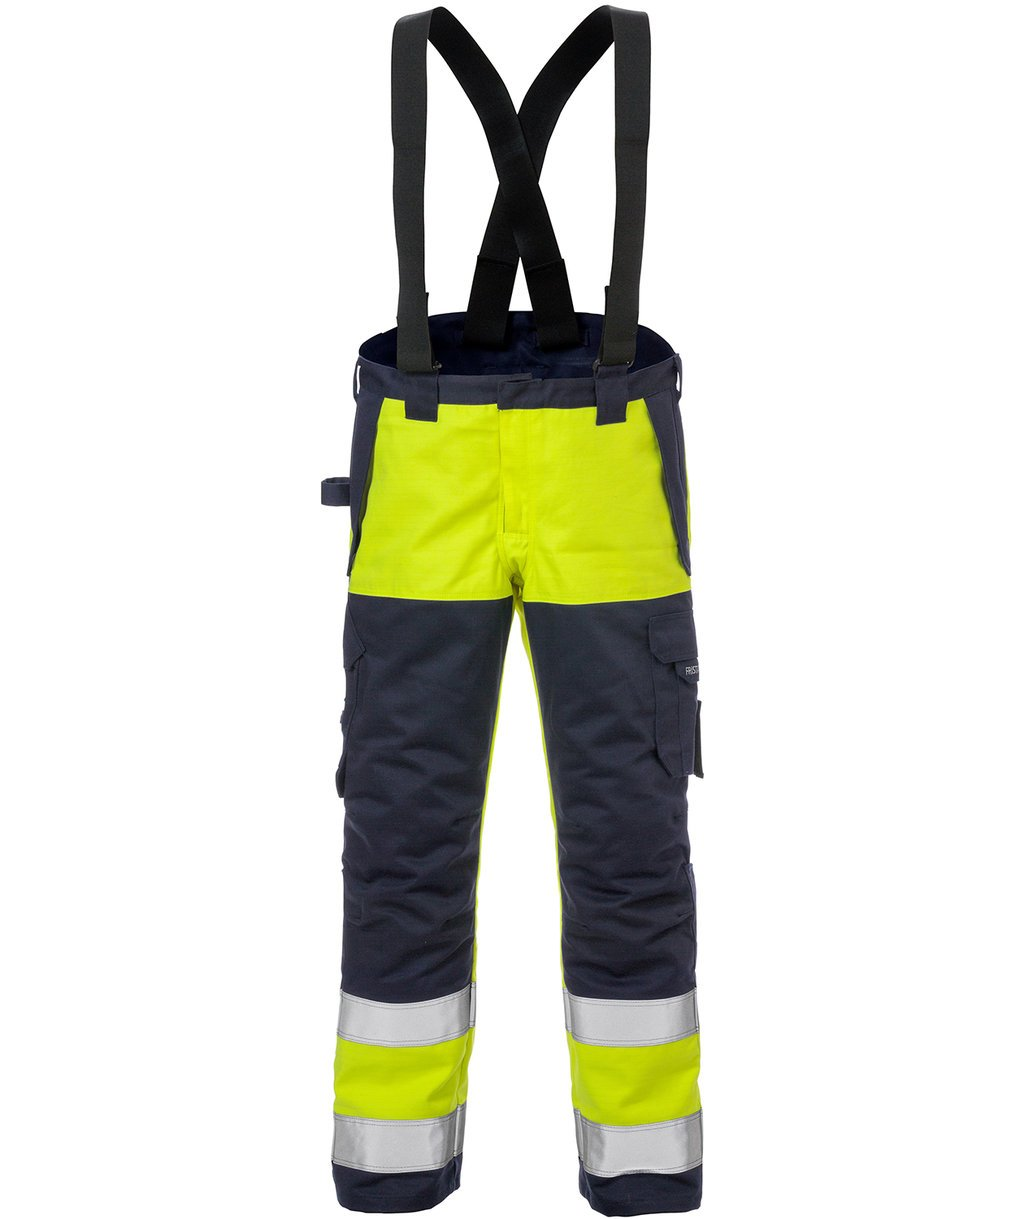 Fristads Flame winter work trousers, Hi-Vis Yellow/Marine Blue